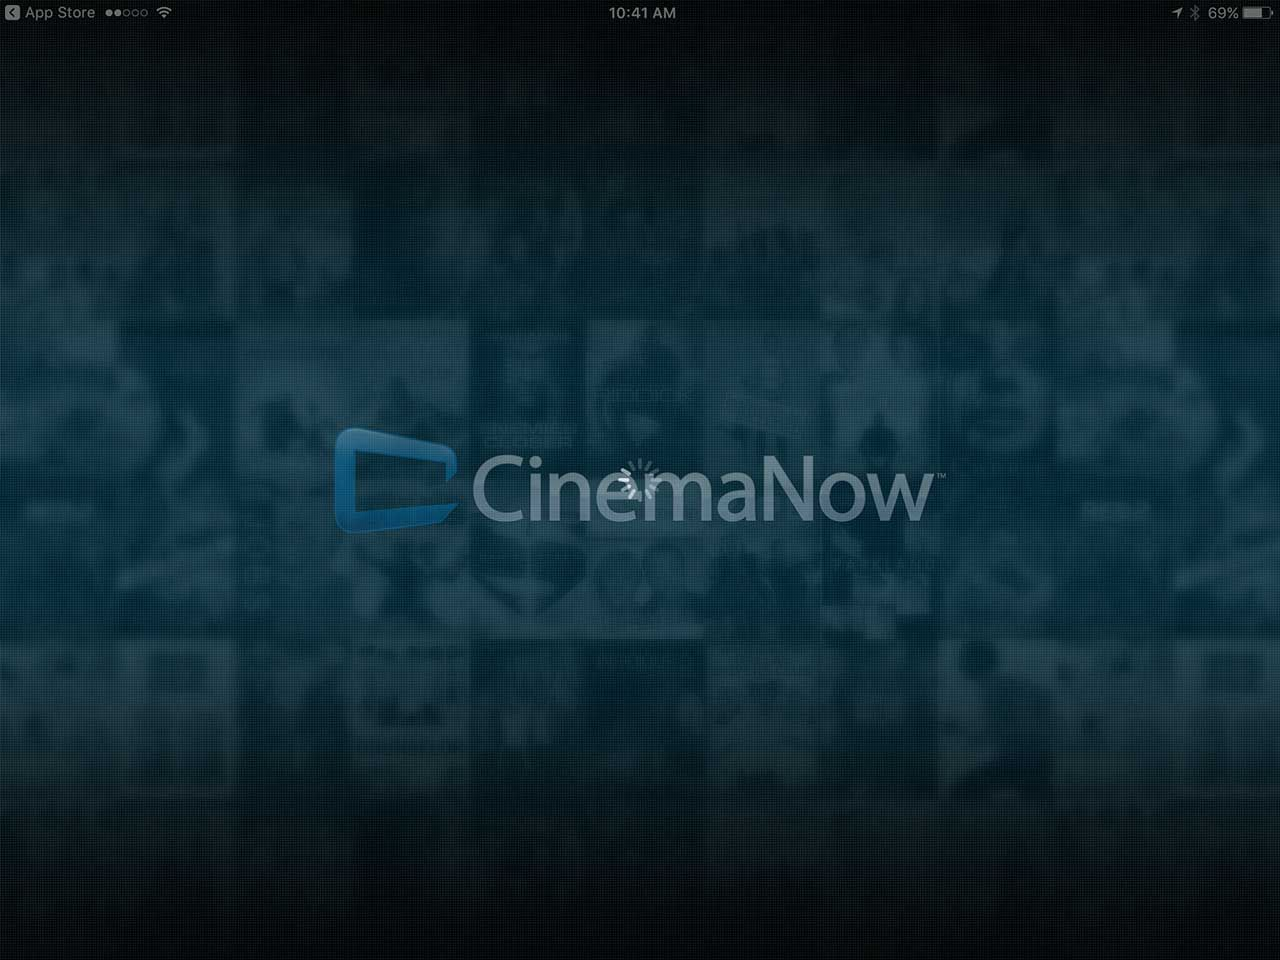 cinemanow-loading-ipad-1280px.jpg